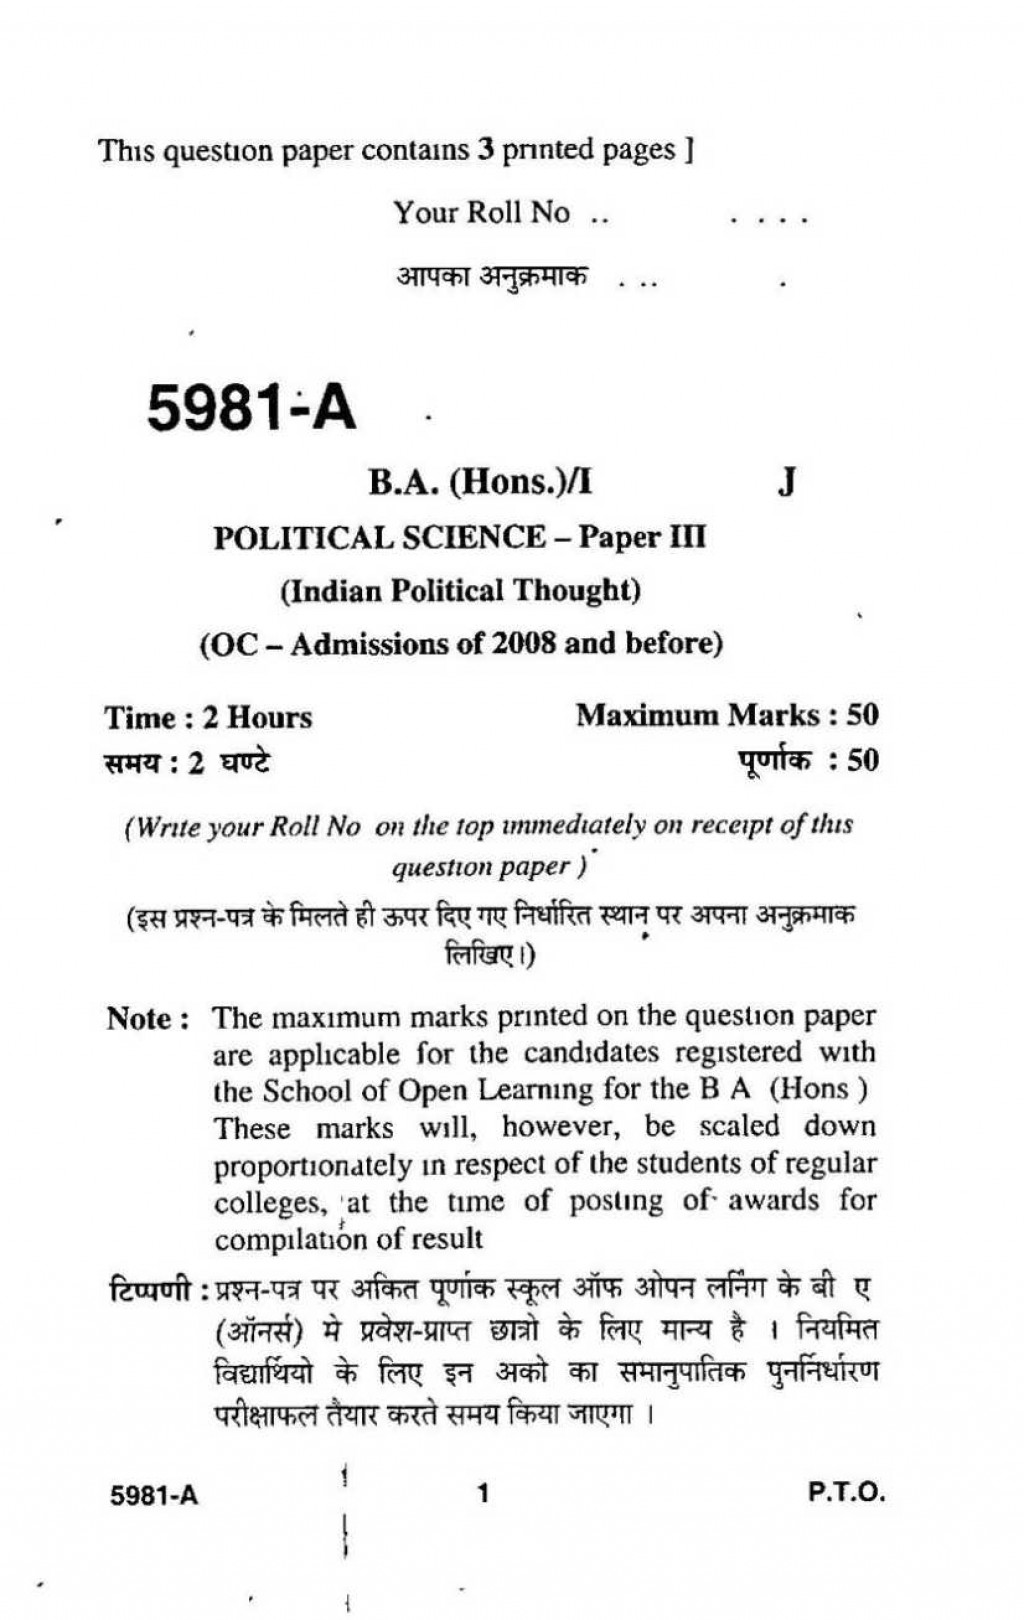 014 Political Science Research Essay Topics Paper Delhi University H First Year Previous Years Question Archaicawful 2014 101 Large